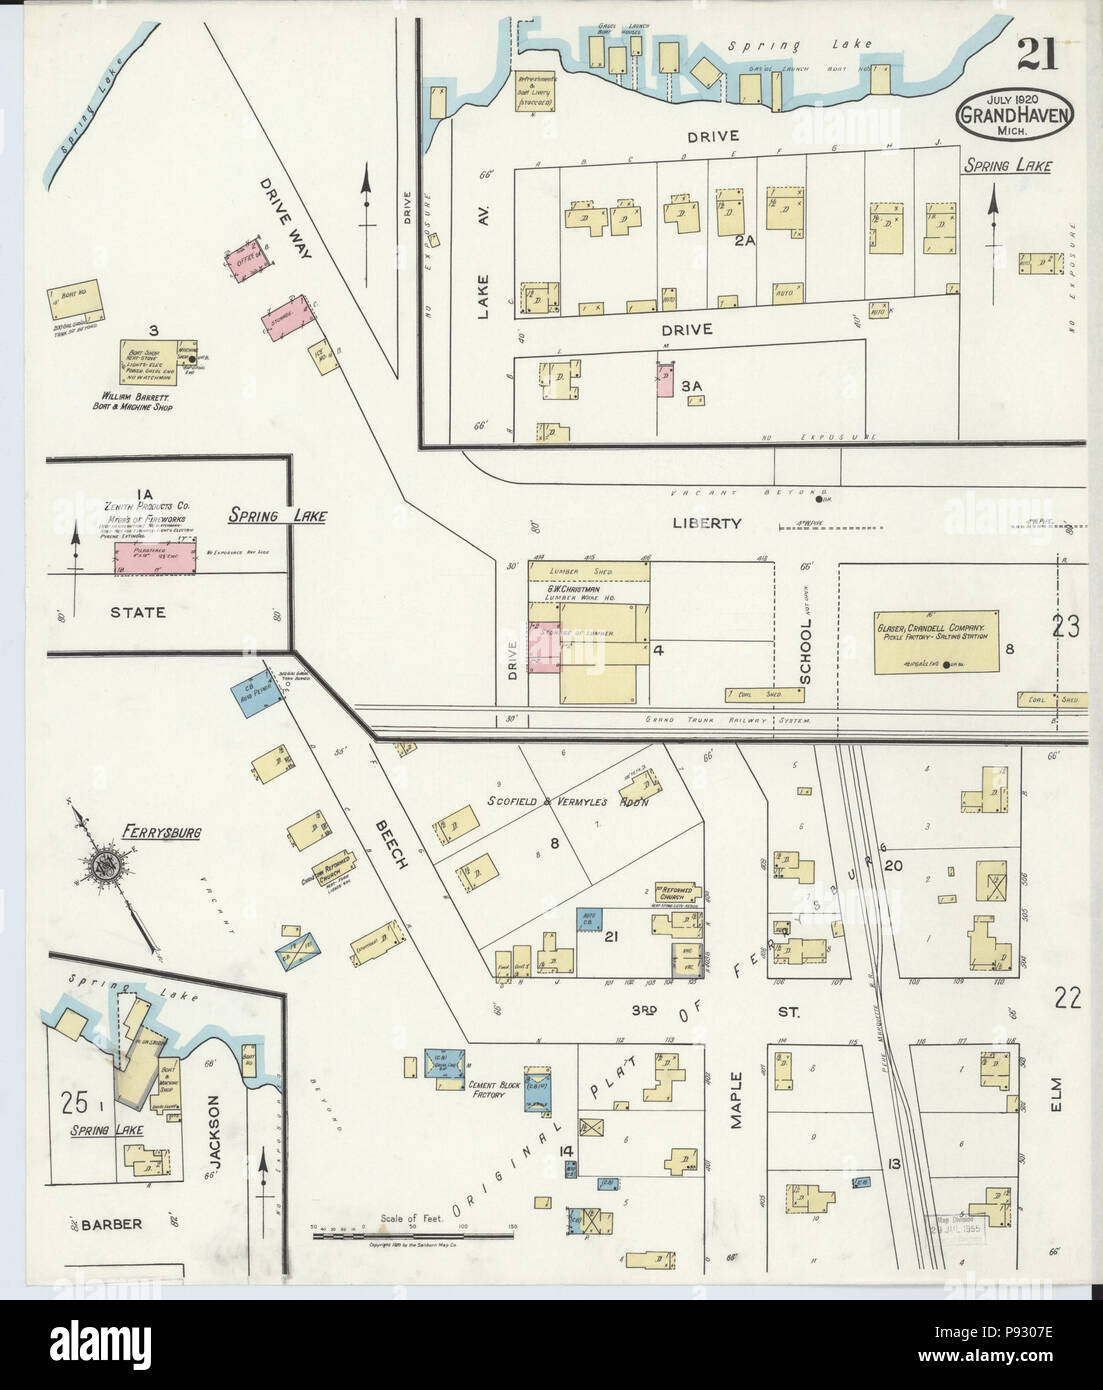 Grand Lake Fire Map.498 Sanborn Fire Insurance Map From Grand Haven Ottawa County